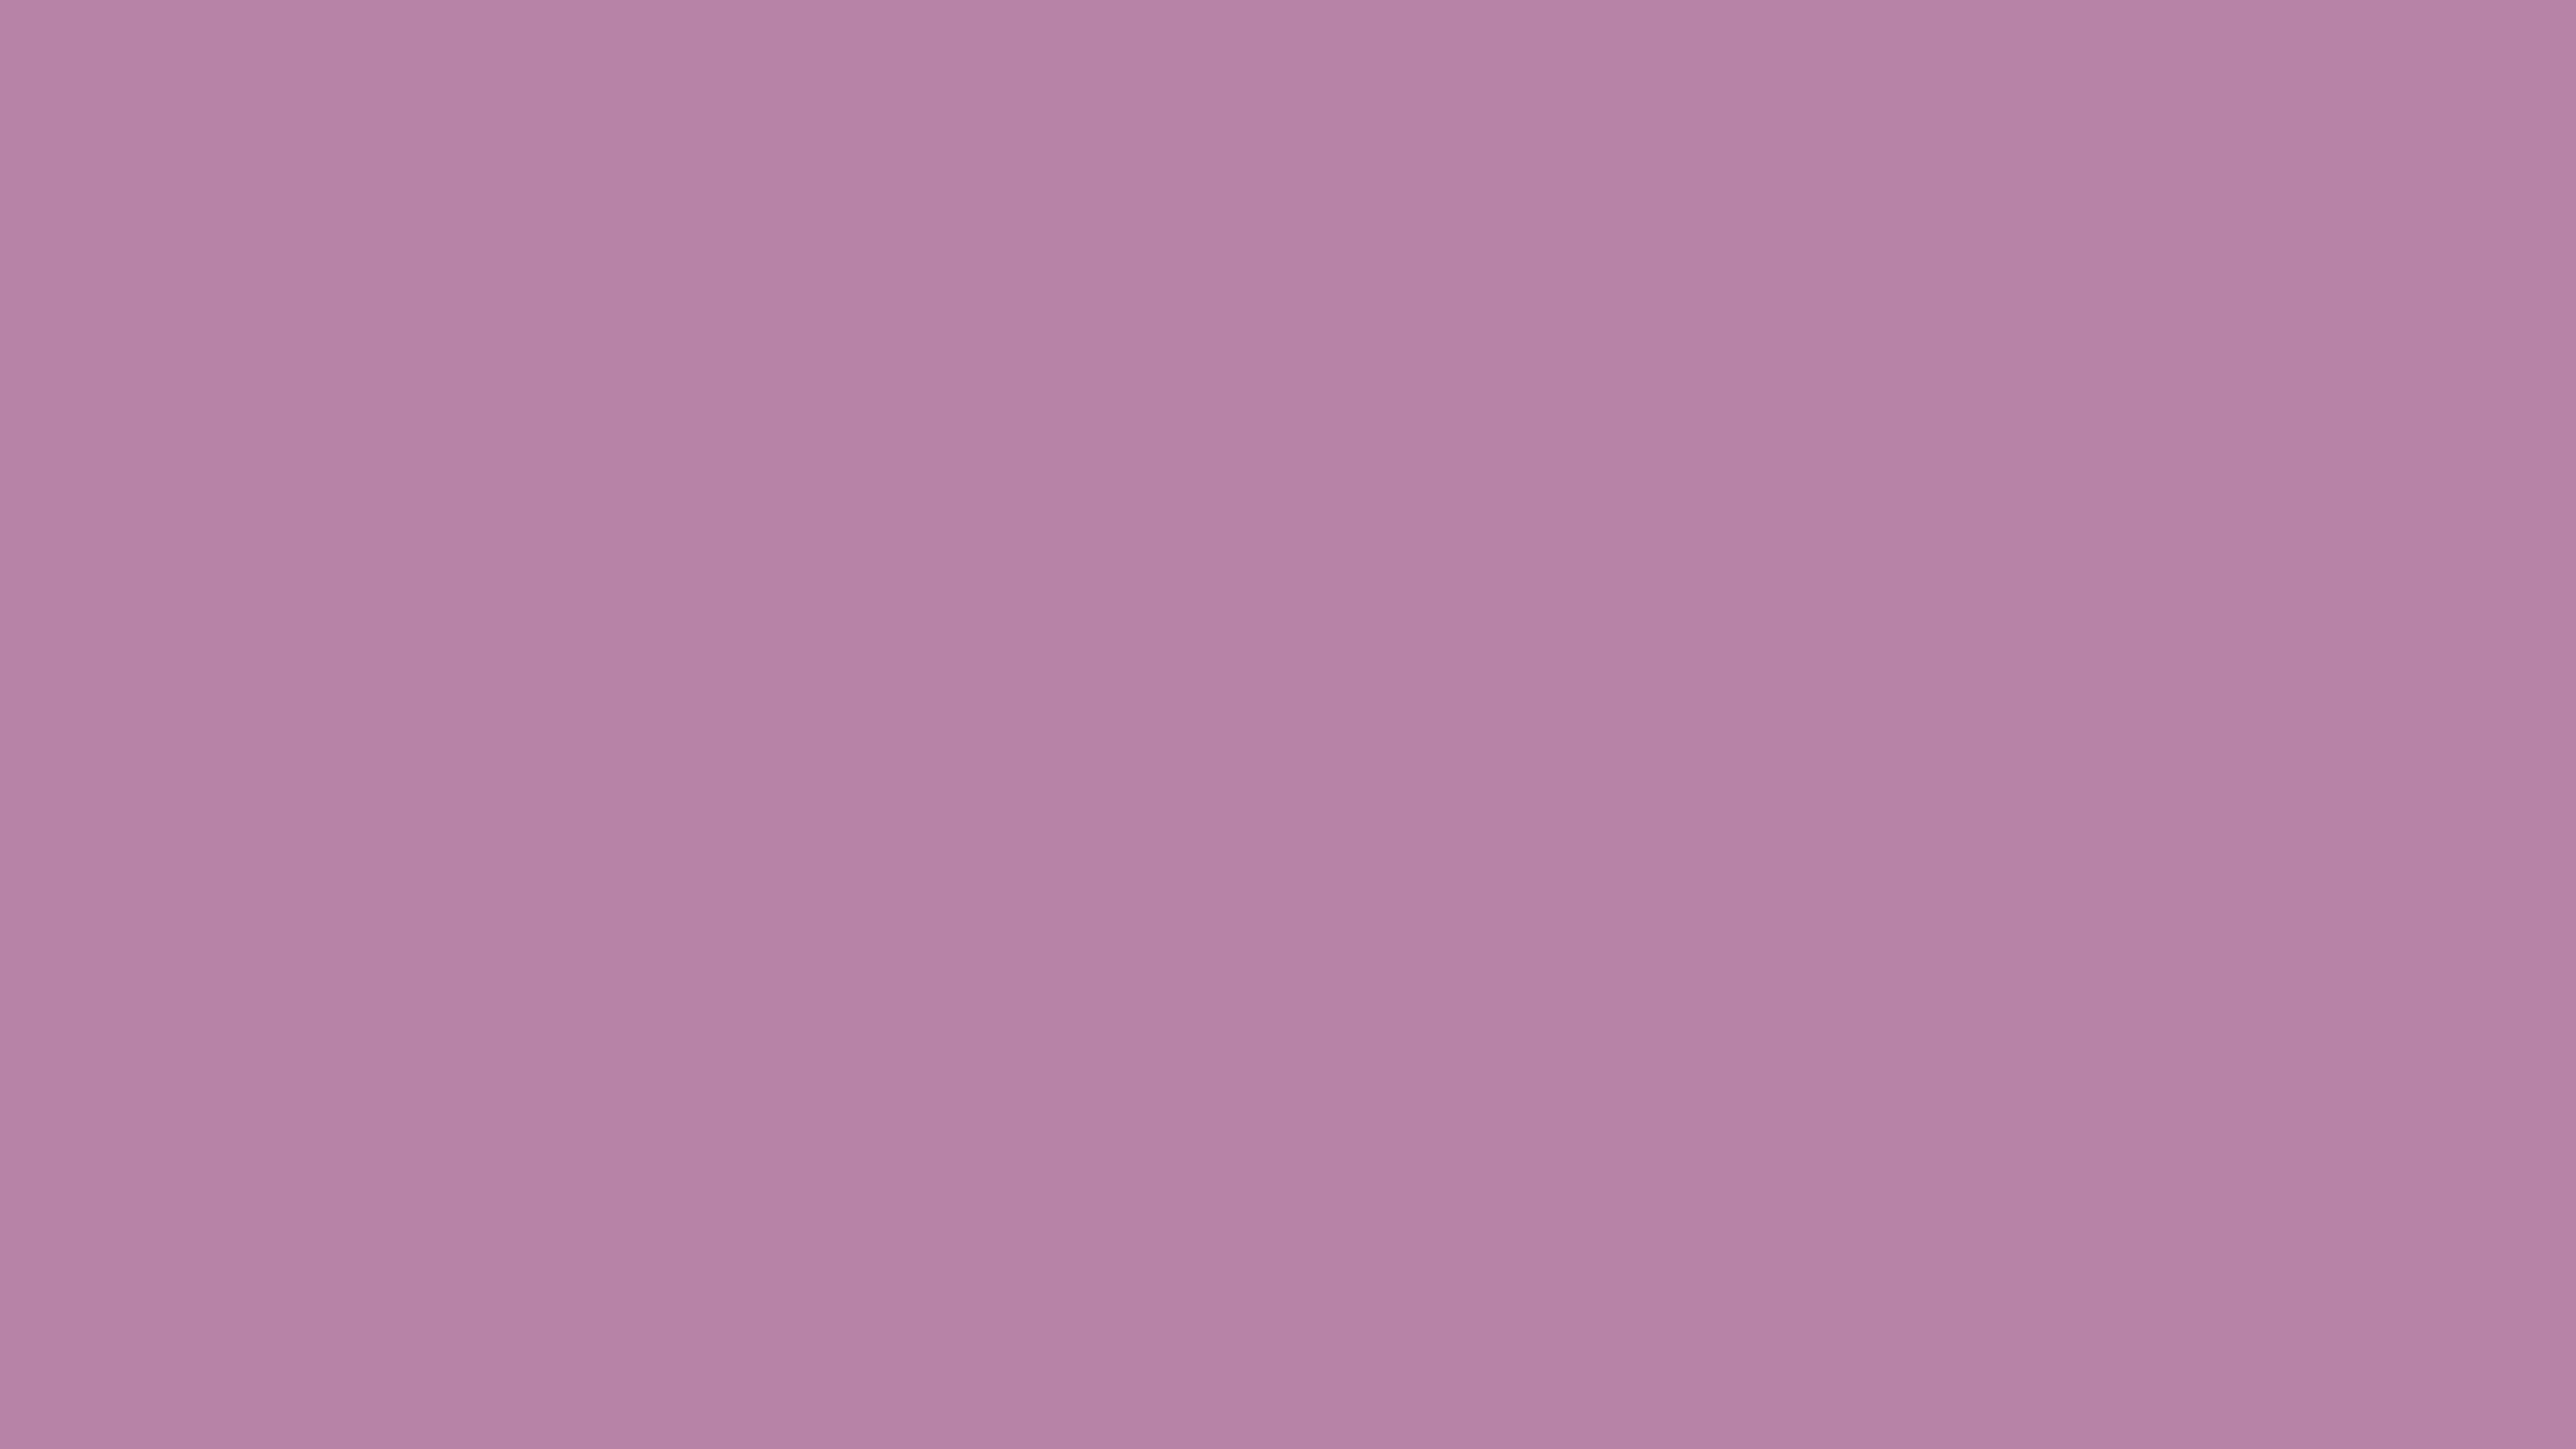 7680x4320 Opera Mauve Solid Color Background